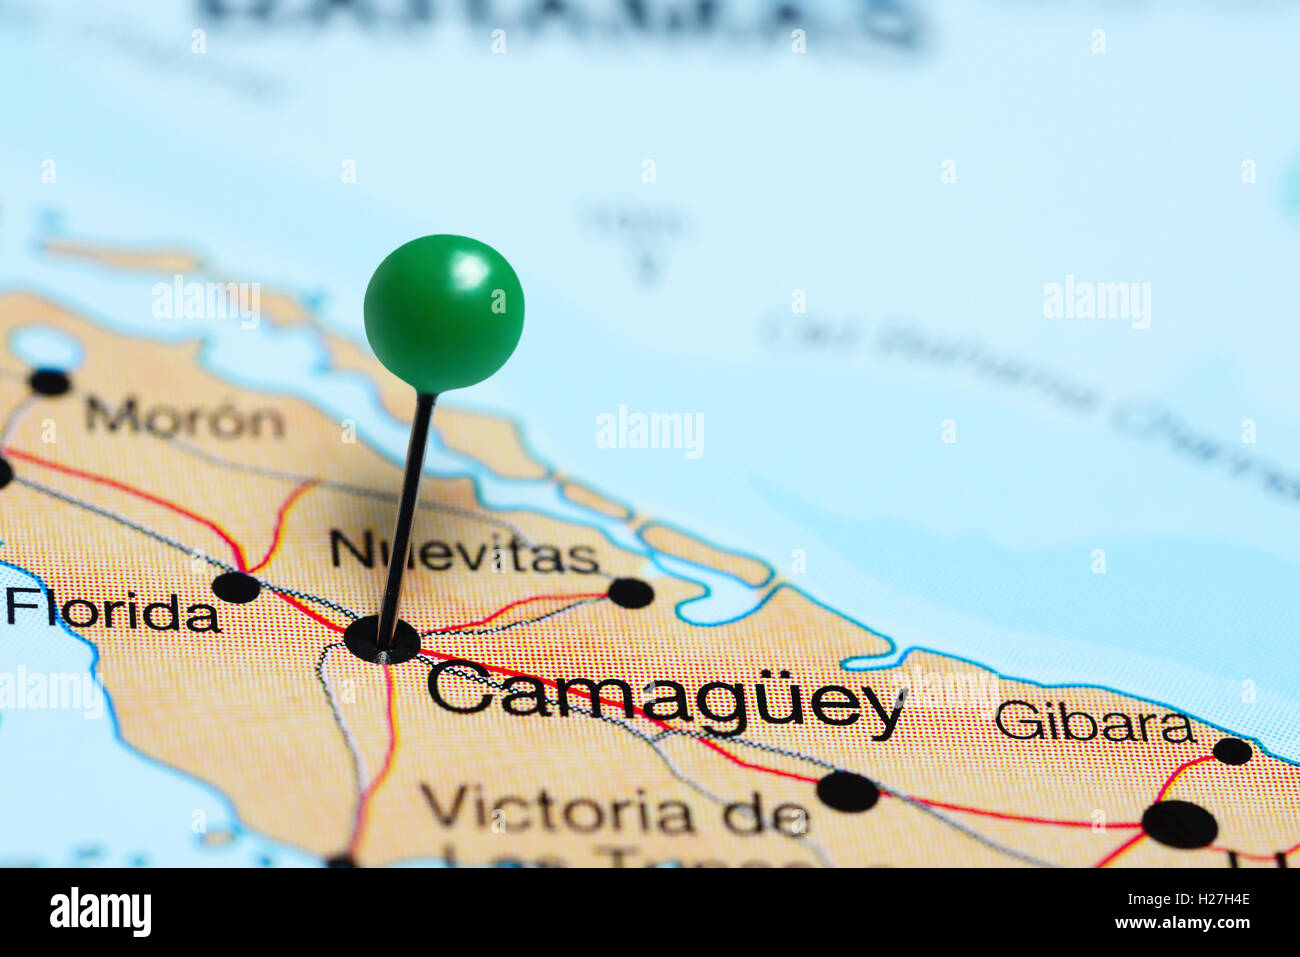 Camaguey pinned on a map of Cuba Stock Photo Royalty Free Image